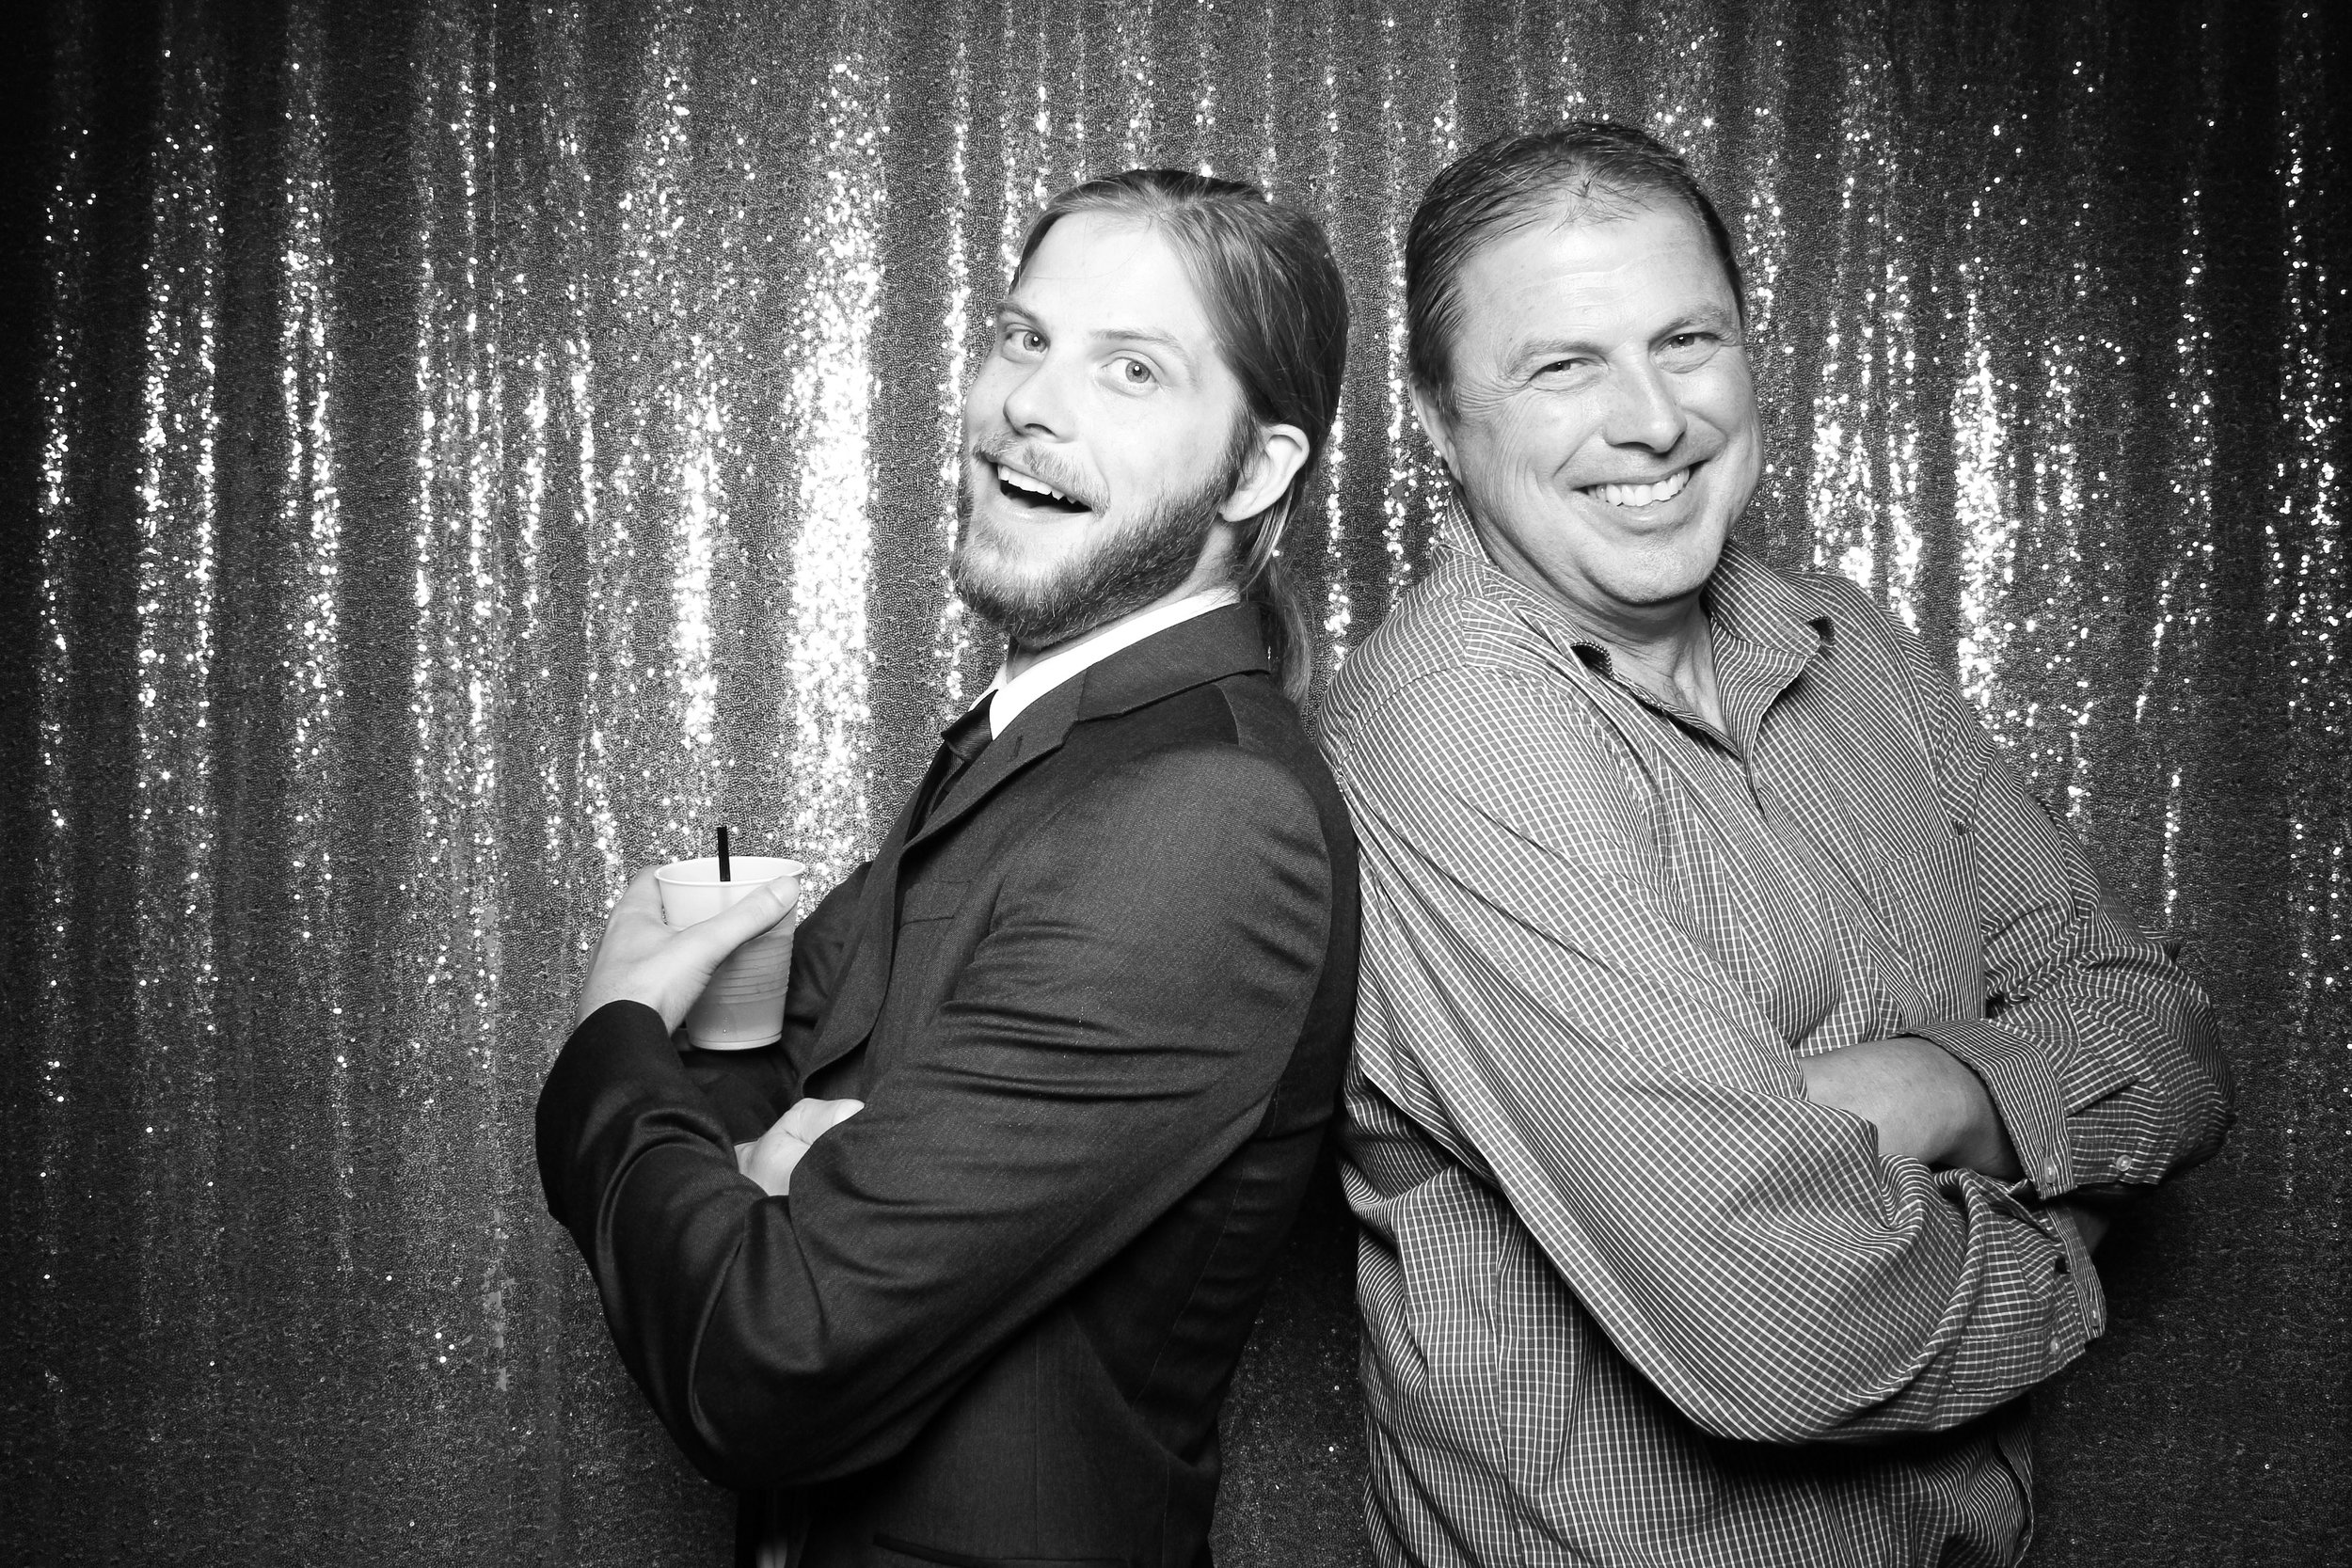 Chicago_Vintage_Wedding_Photobooth_Wisconsin_04.jpg